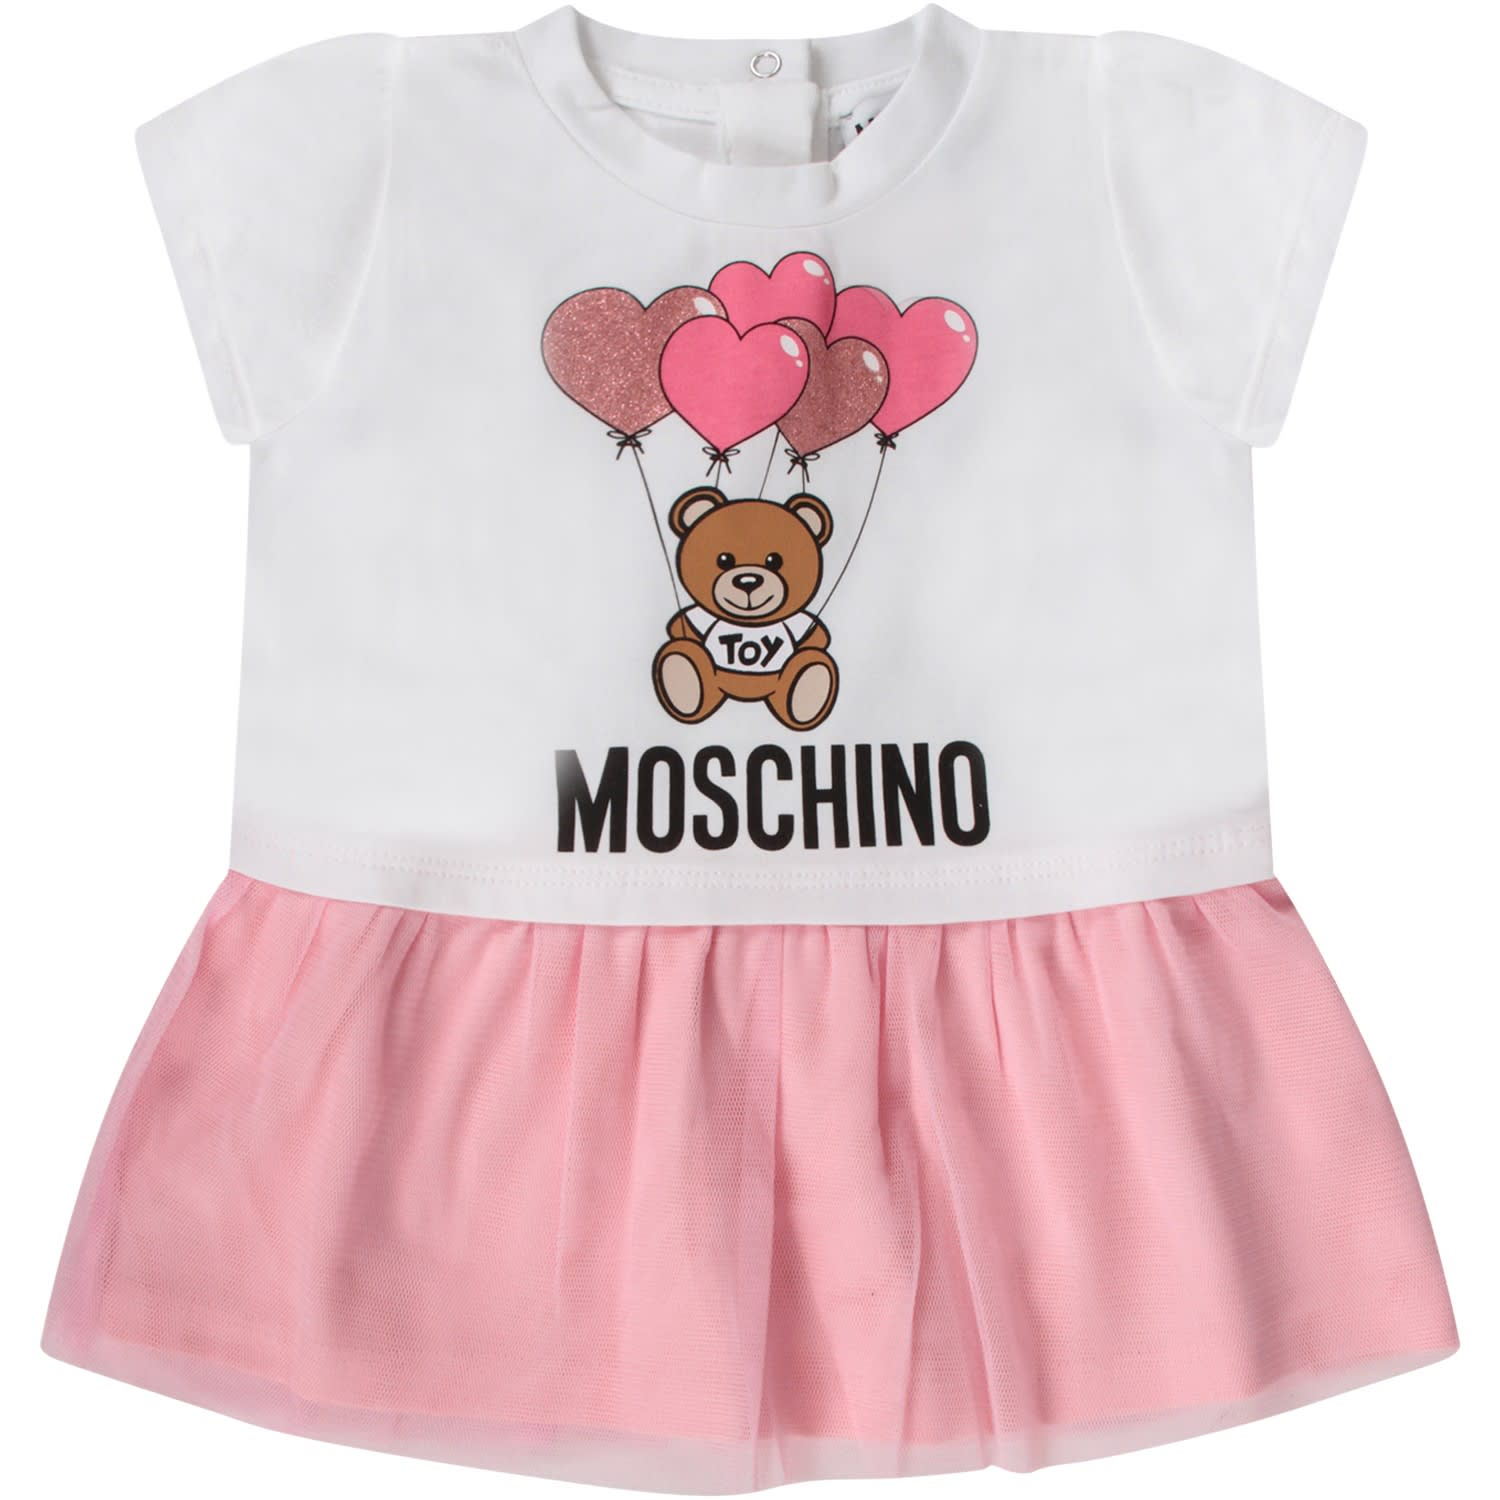 Buy Moschino White Babygirl Dress With Teddy Bear And Balloons online, shop Moschino with free shipping